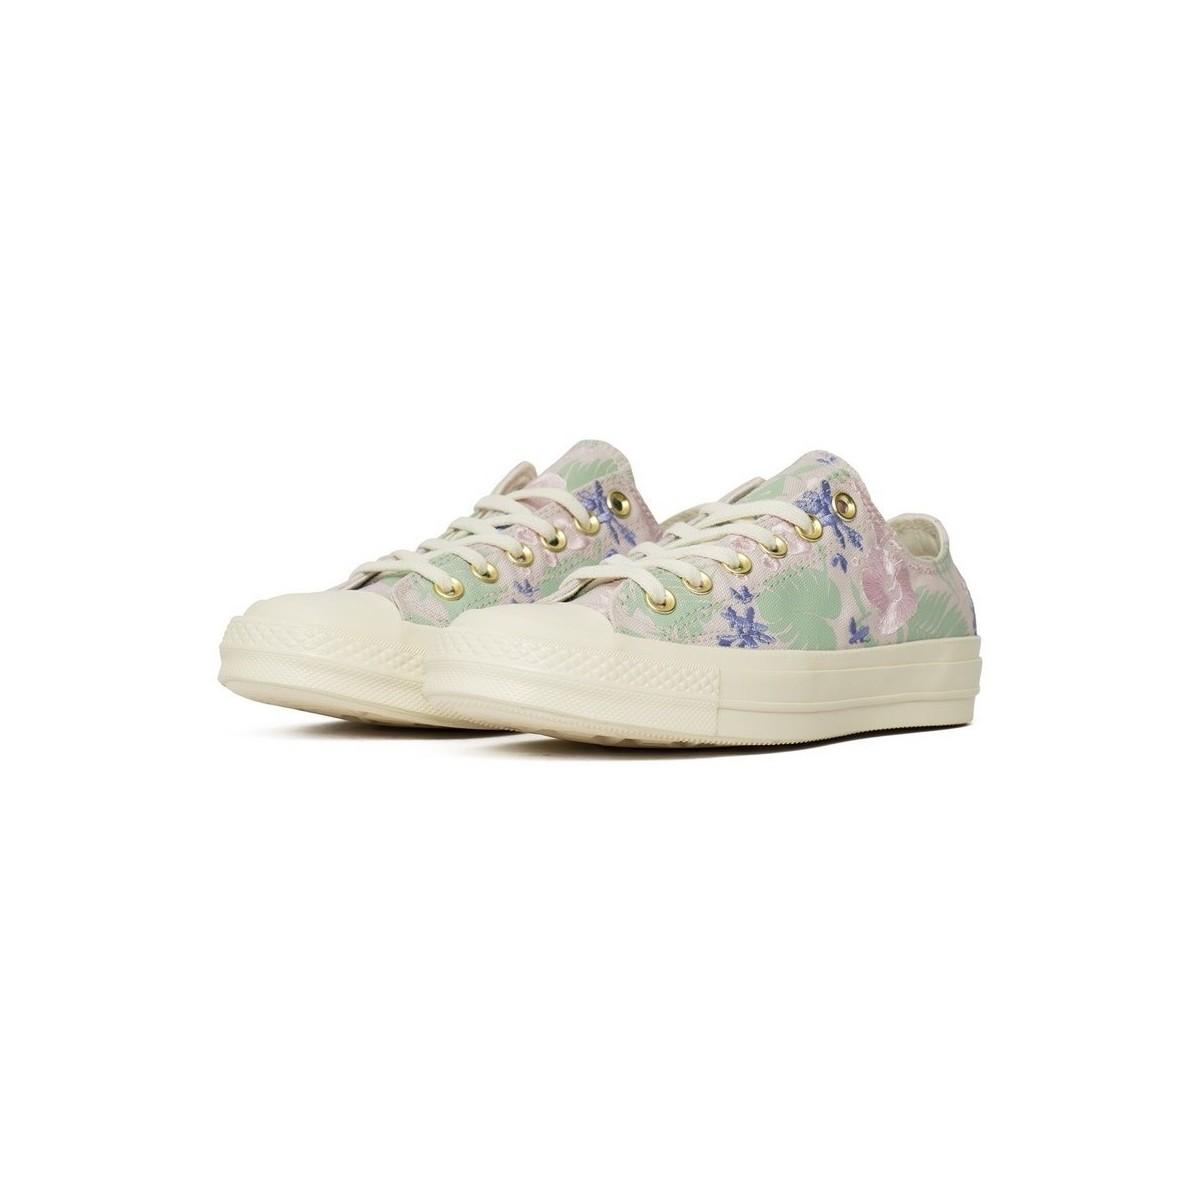 Converse Chuck Taylor All Star 70 Women's Shoes (trainers) In Multicolour in White